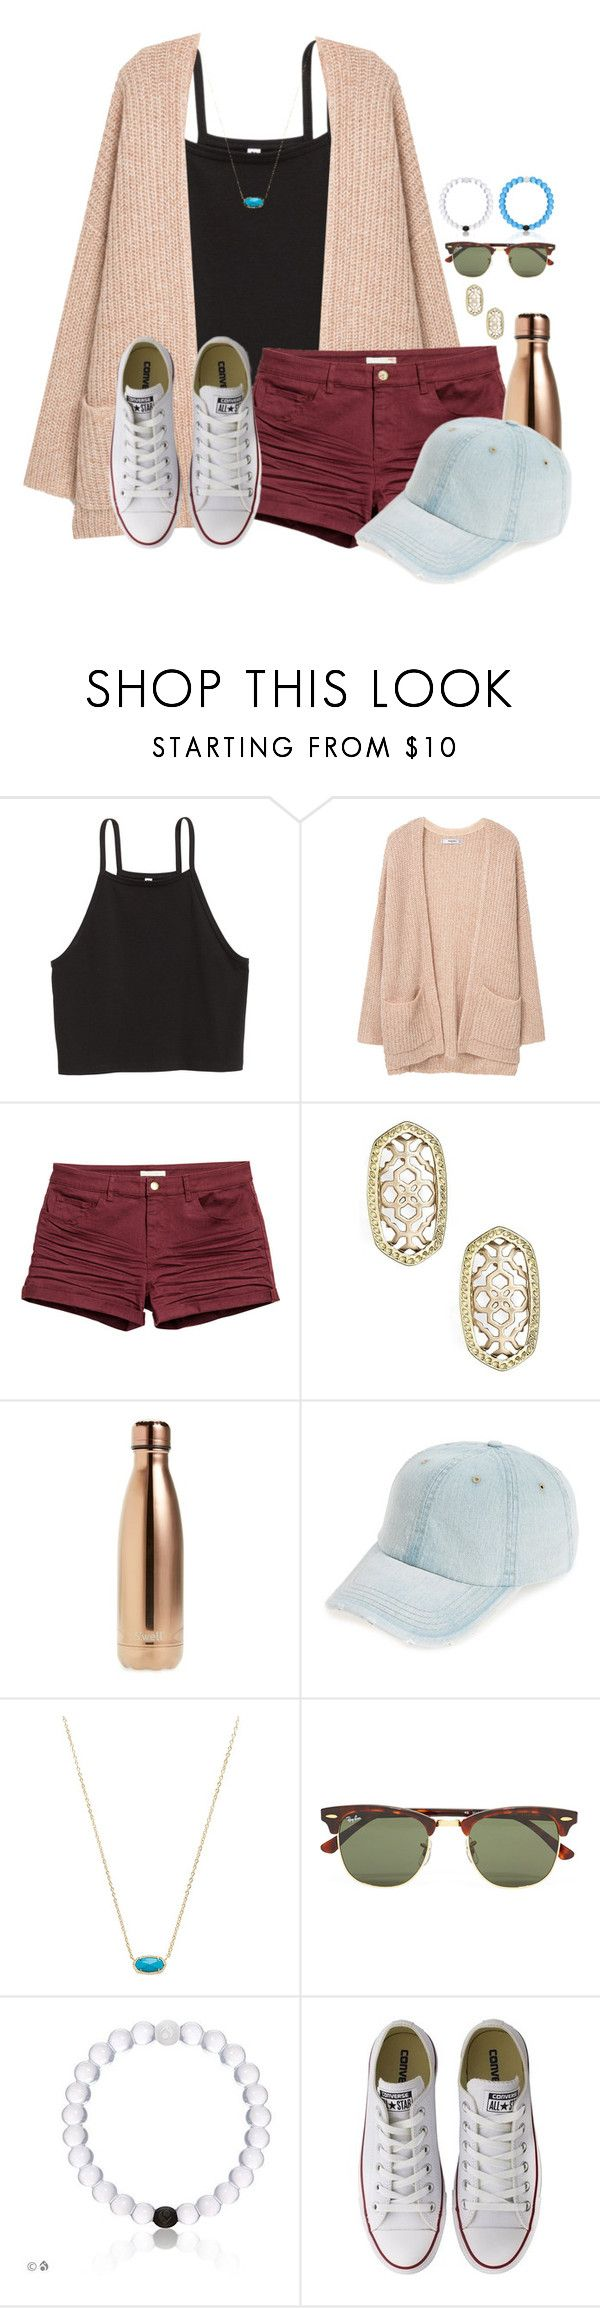 """~mall outfit~"" by flroasburn ❤ liked on Polyvore featuring MANGO, H&M, Kendra Scott, S'well, Fantasia, Ray-Ban and Converse"